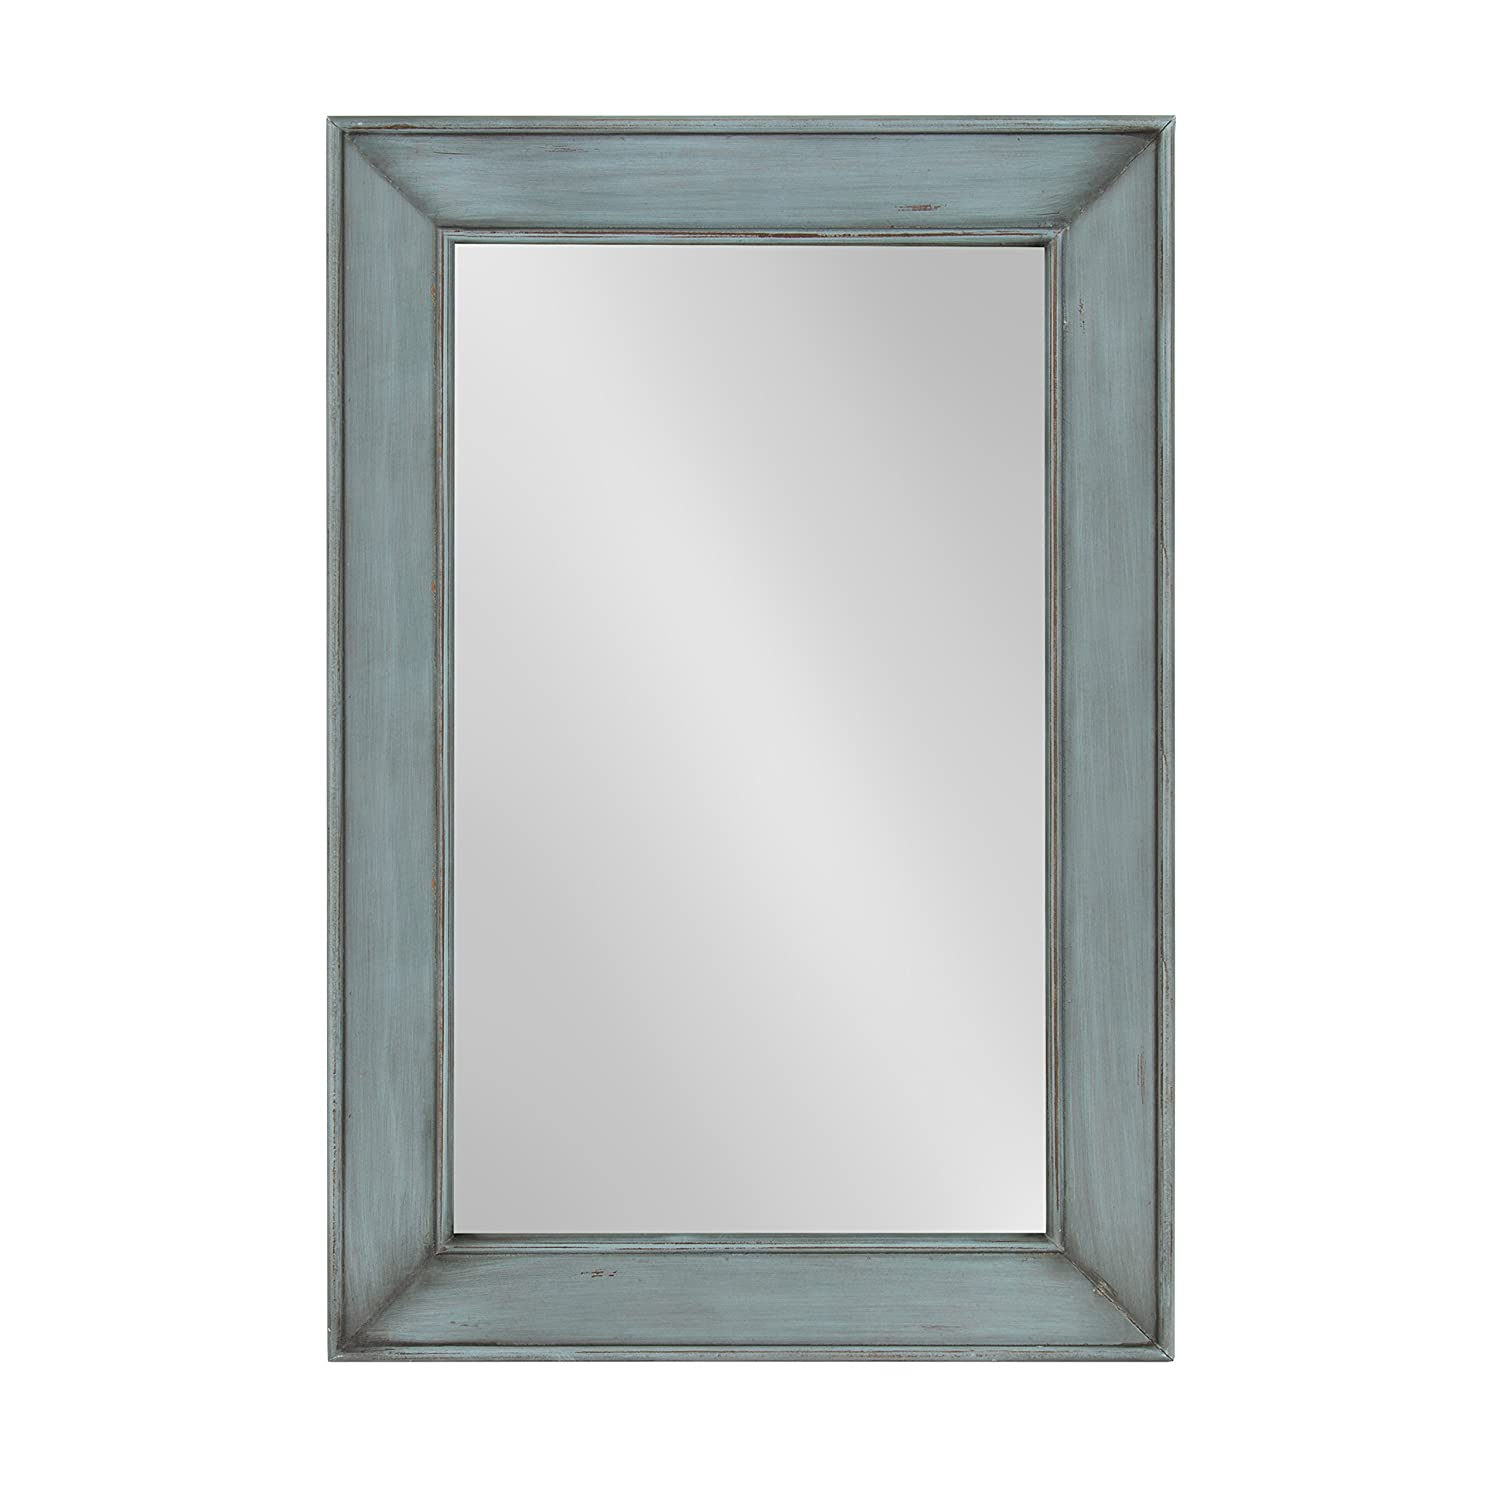 Kate and Laurel Yuda Wooden Rectangle Framed Wall Mirror, 23.5×35, Blue